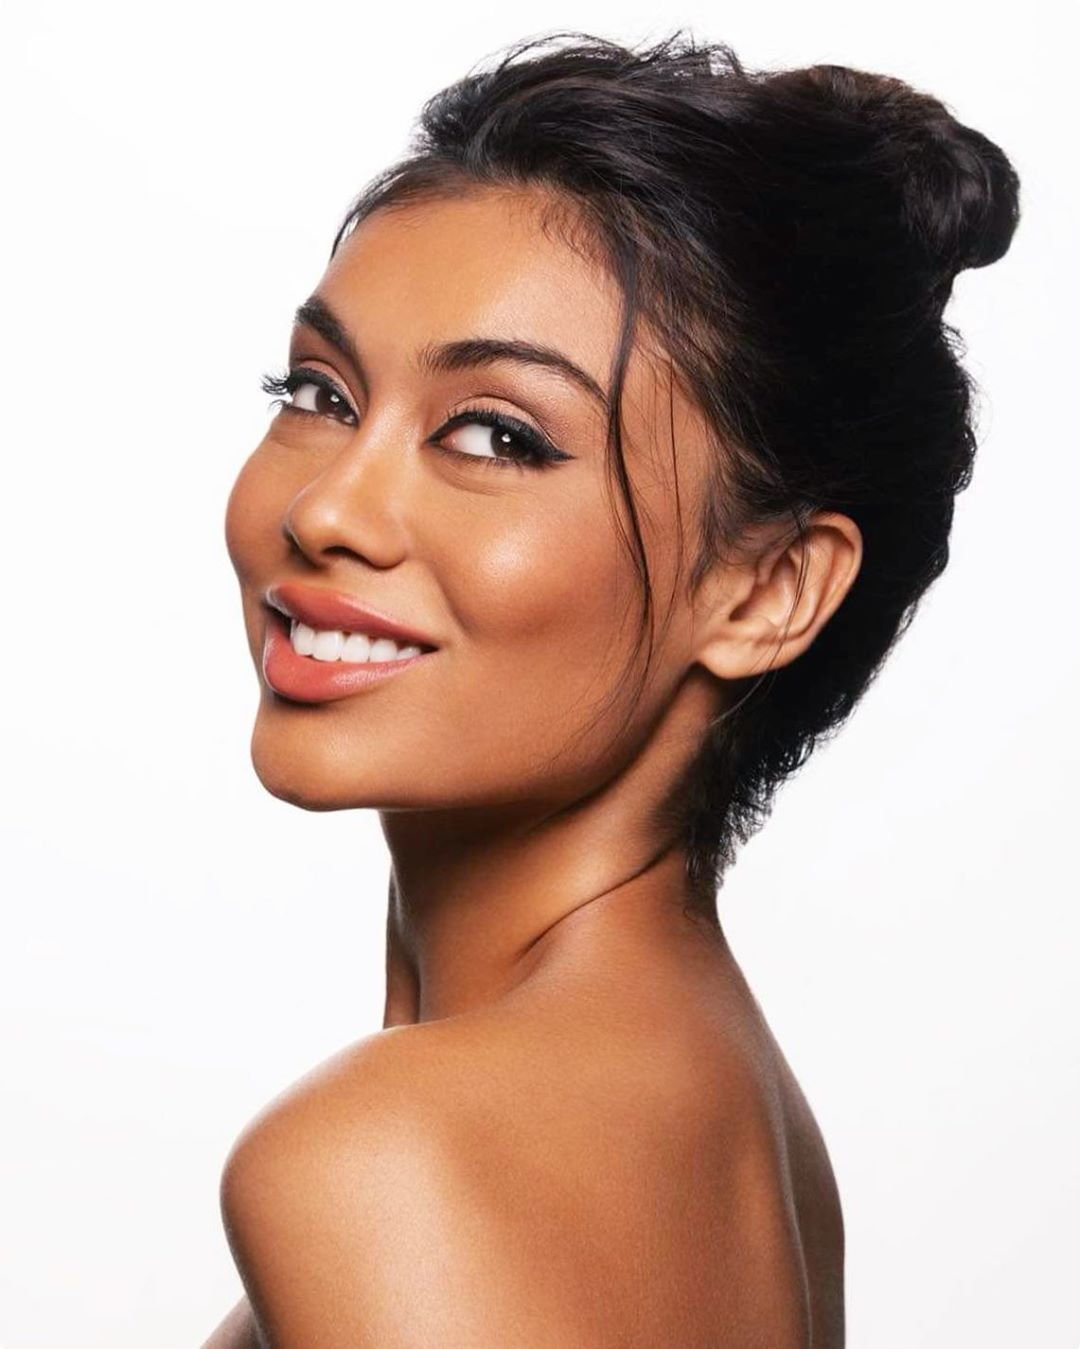 ghazal gill, miss international usa 2019. 70895810